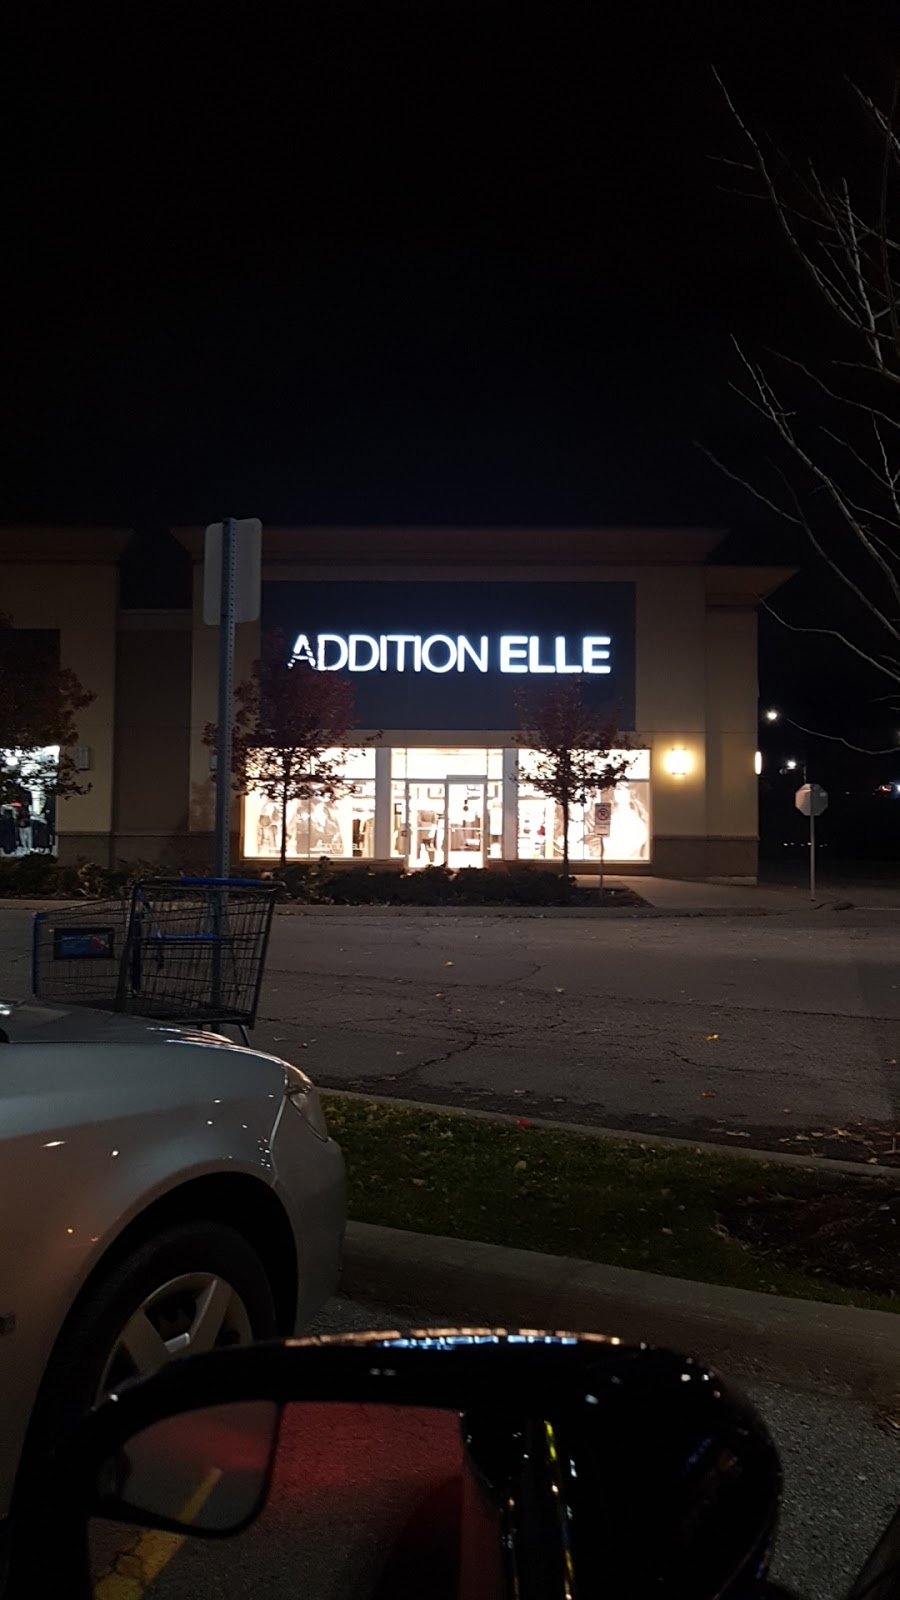 Addition Elle   clothing store   560 Laval Dr, Oshawa, ON L1J 0B5, Canada   9055713770 OR +1 905-571-3770